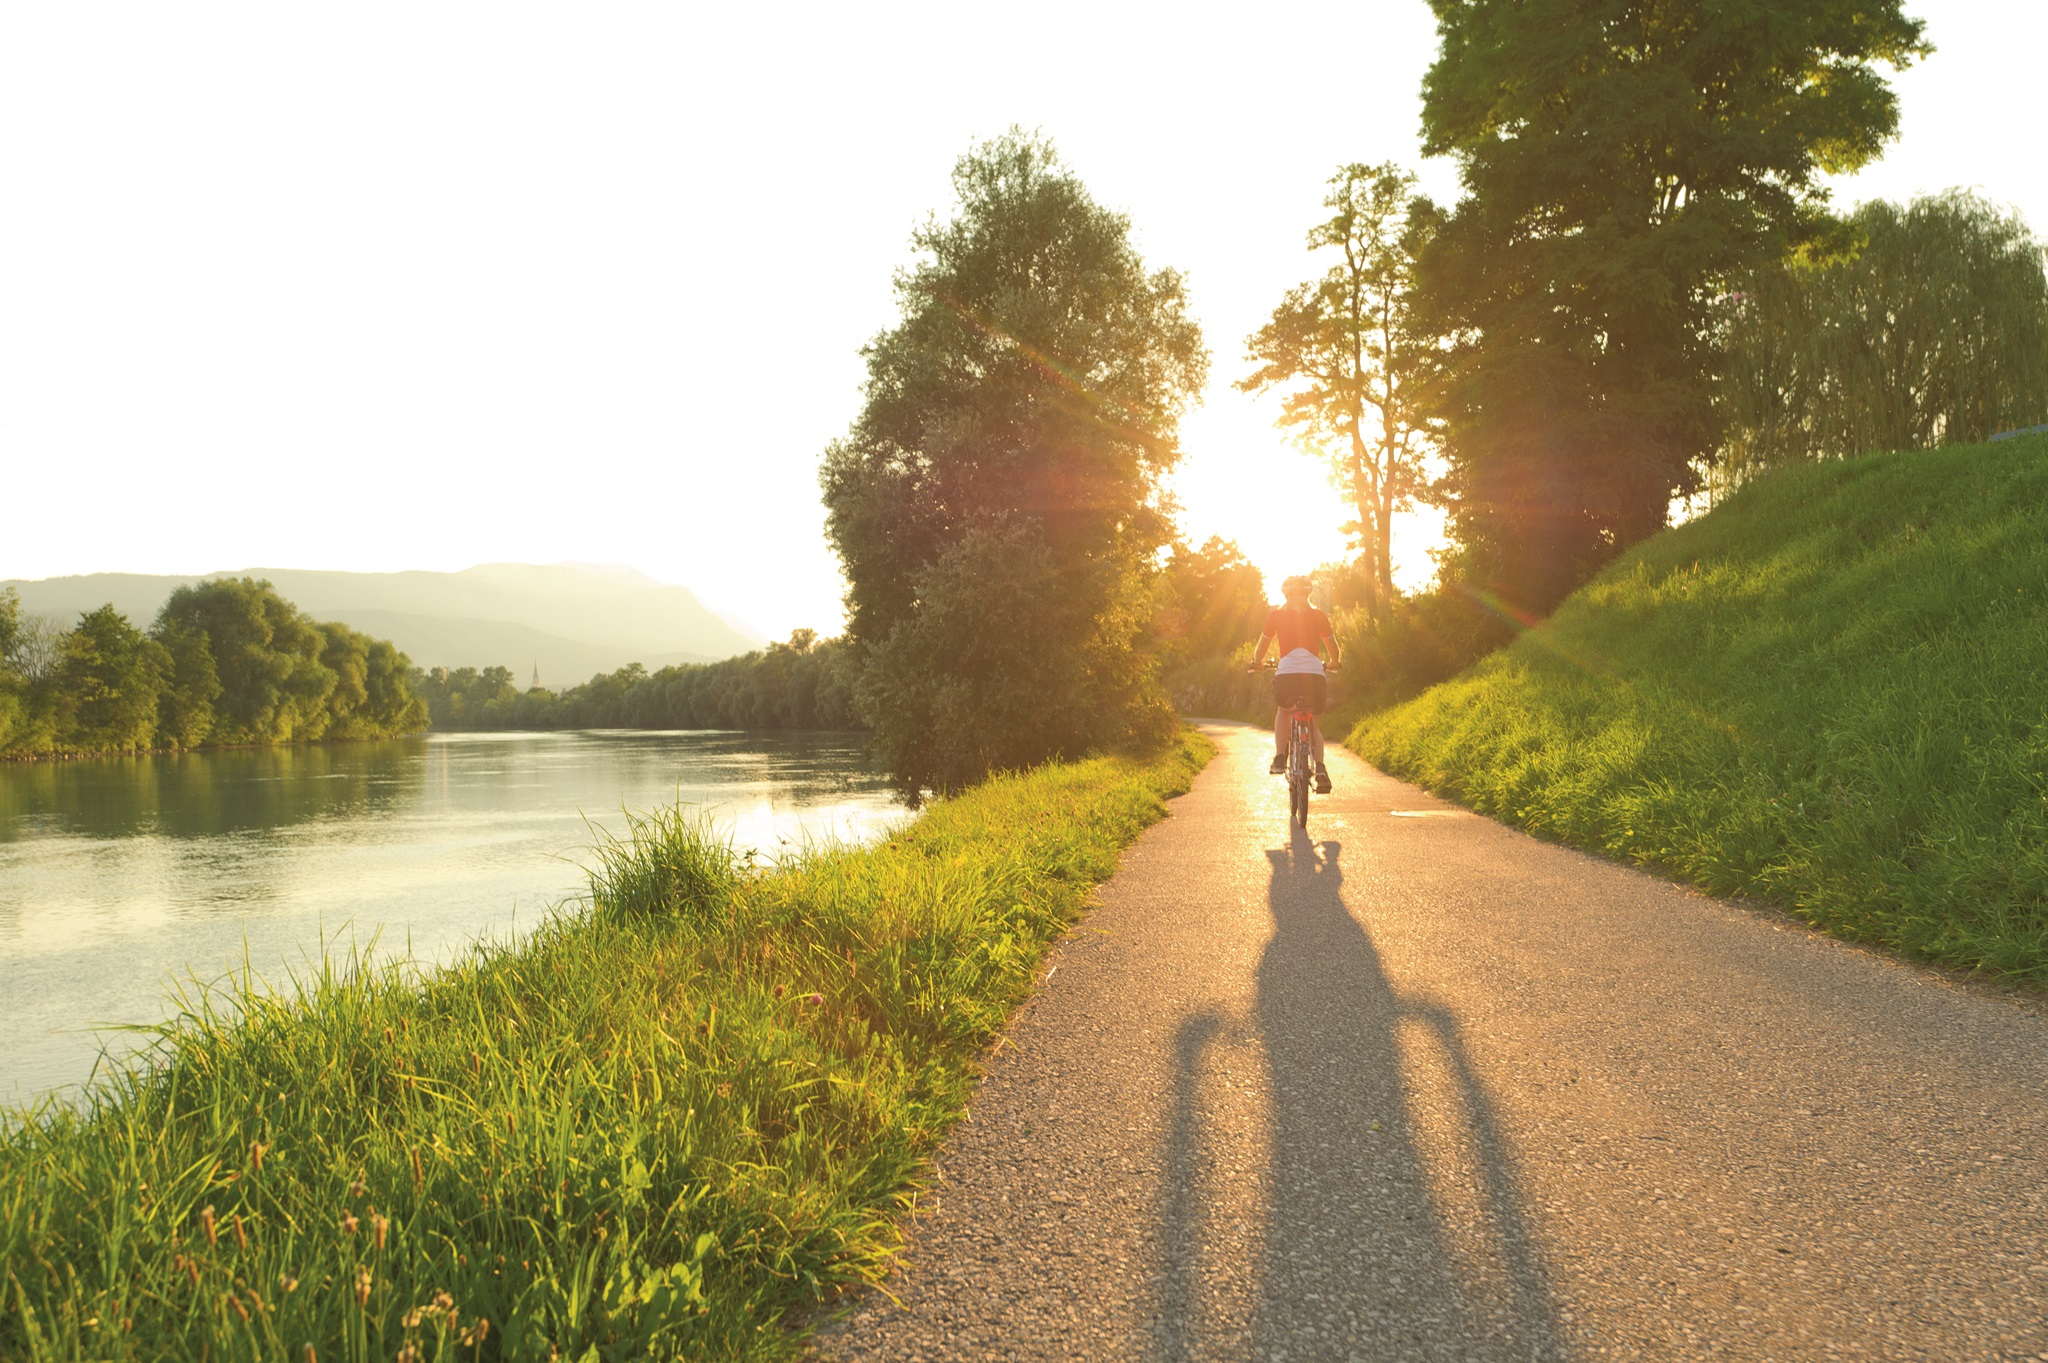 The 5-star Drau Cycle Path connects Italy, Austria, Slovenia, Croatia and Hungary along the Drava